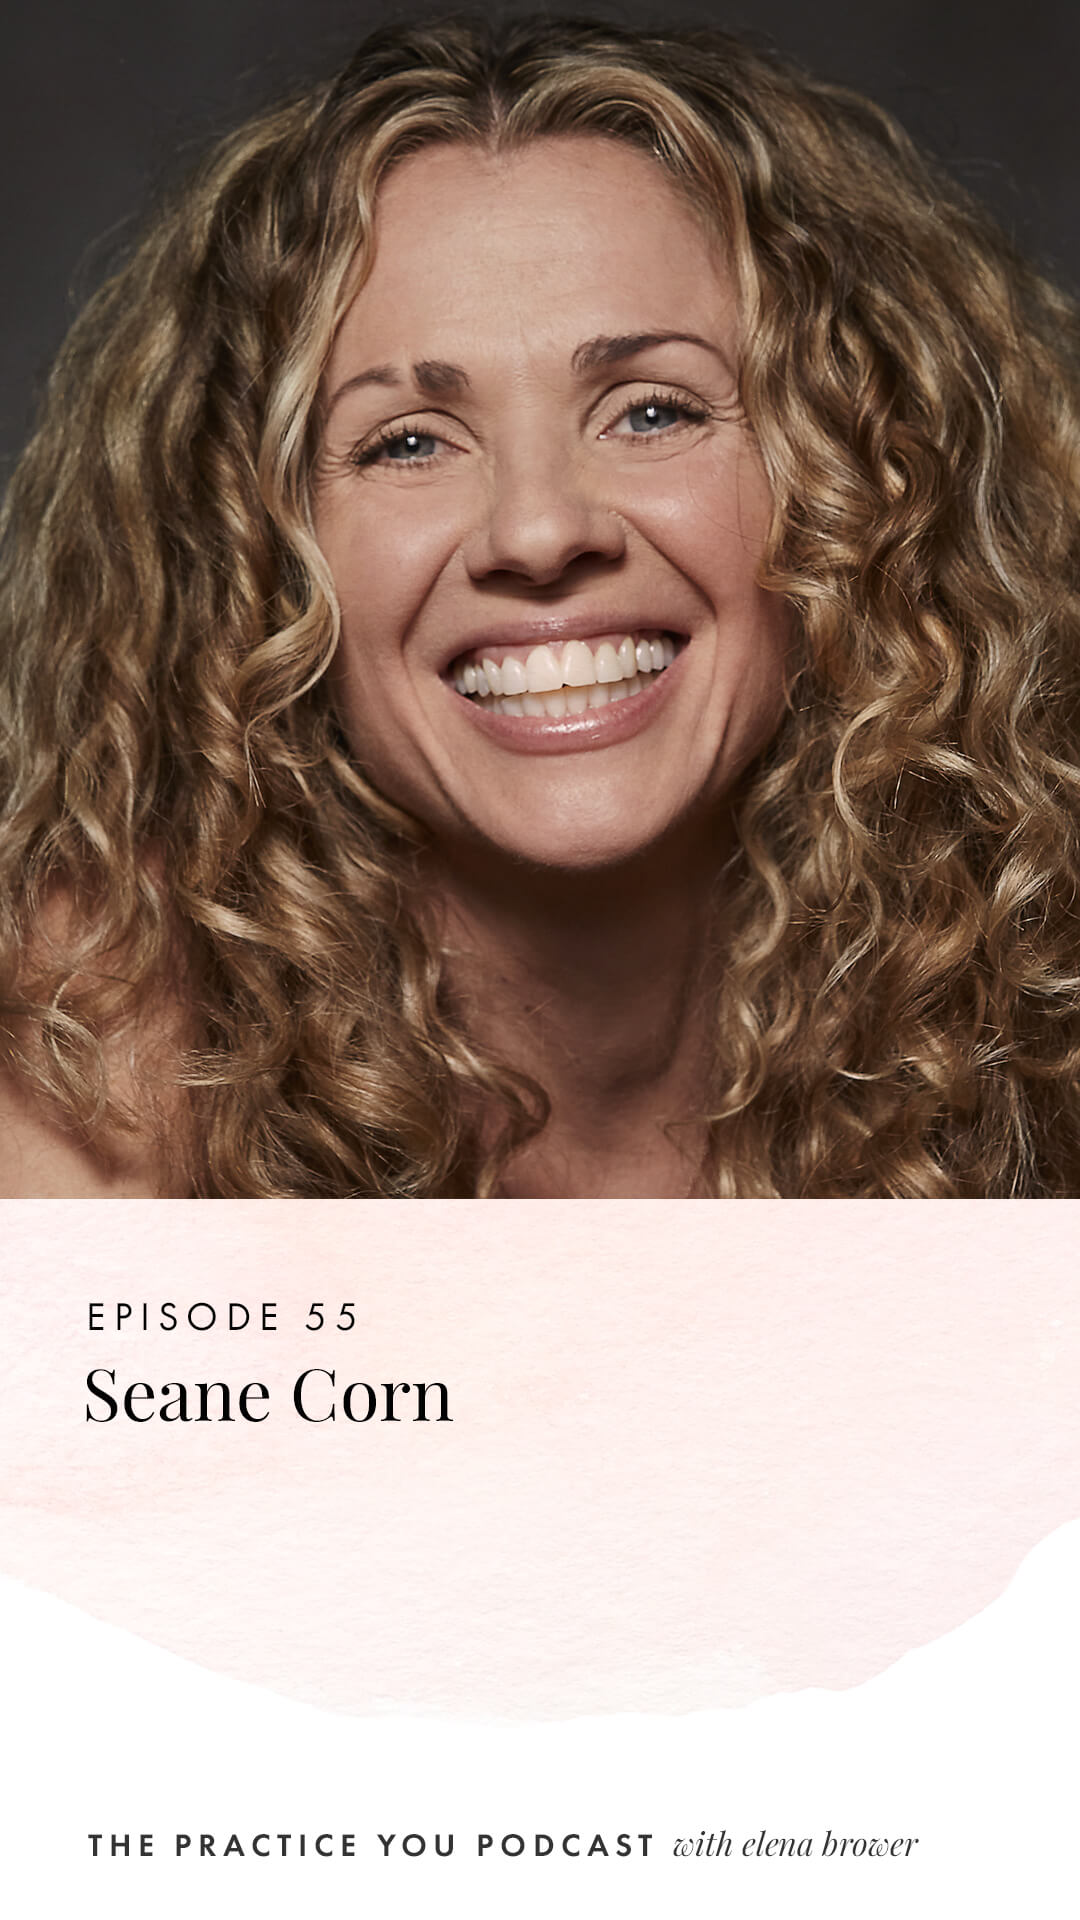 Practice You Podcast - Episode 55: Seane Corn